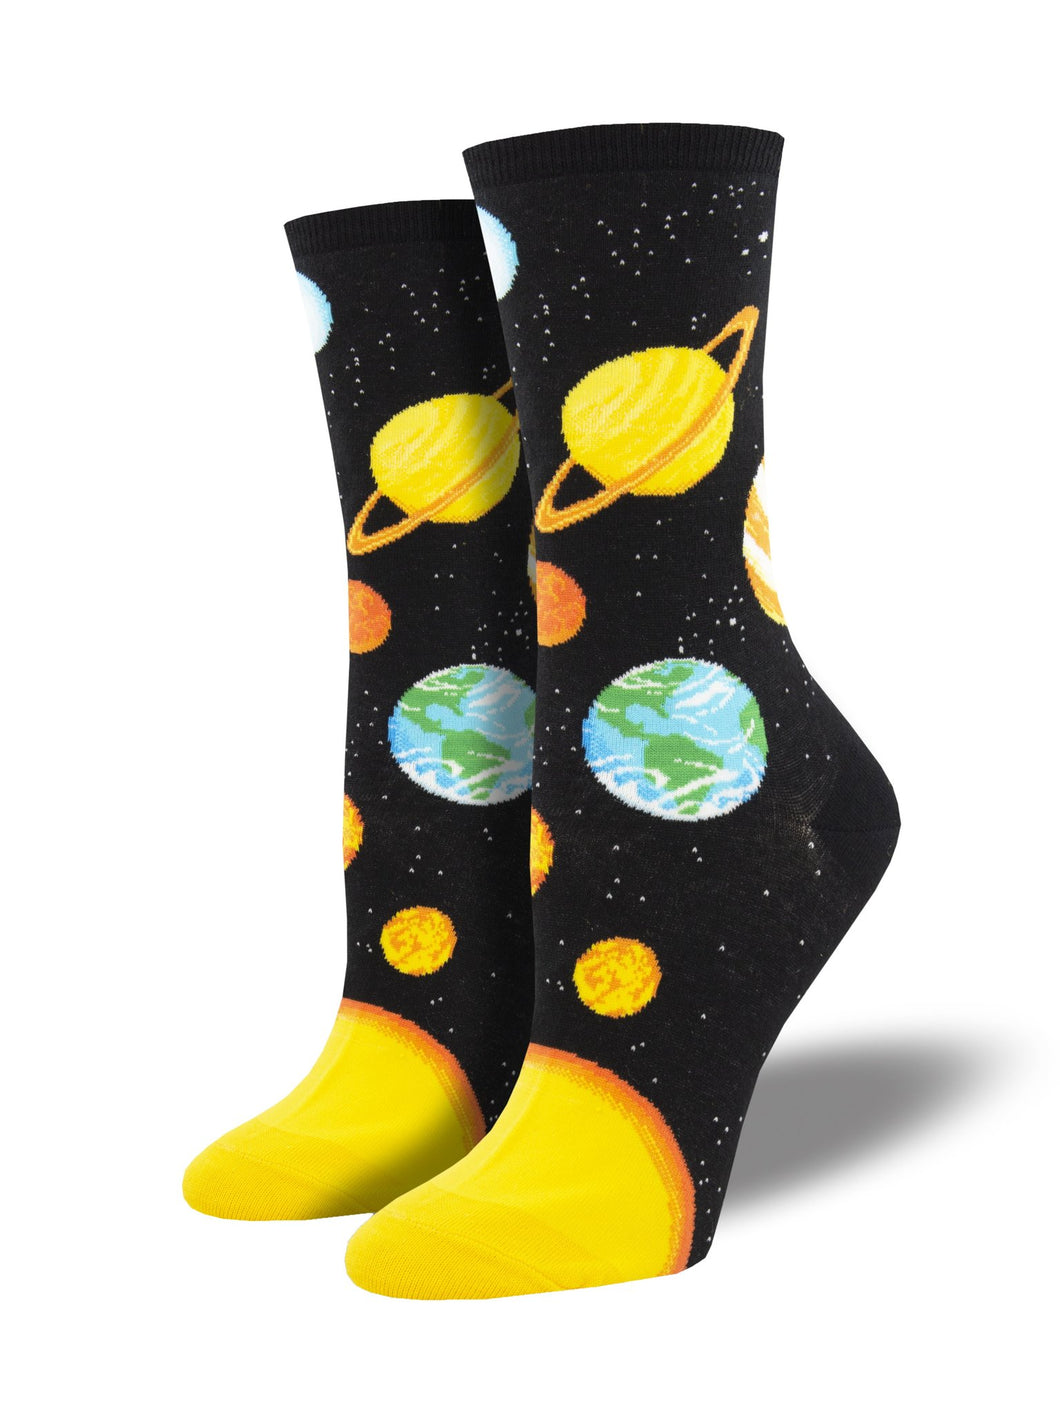 Plutonic Relationship Socks